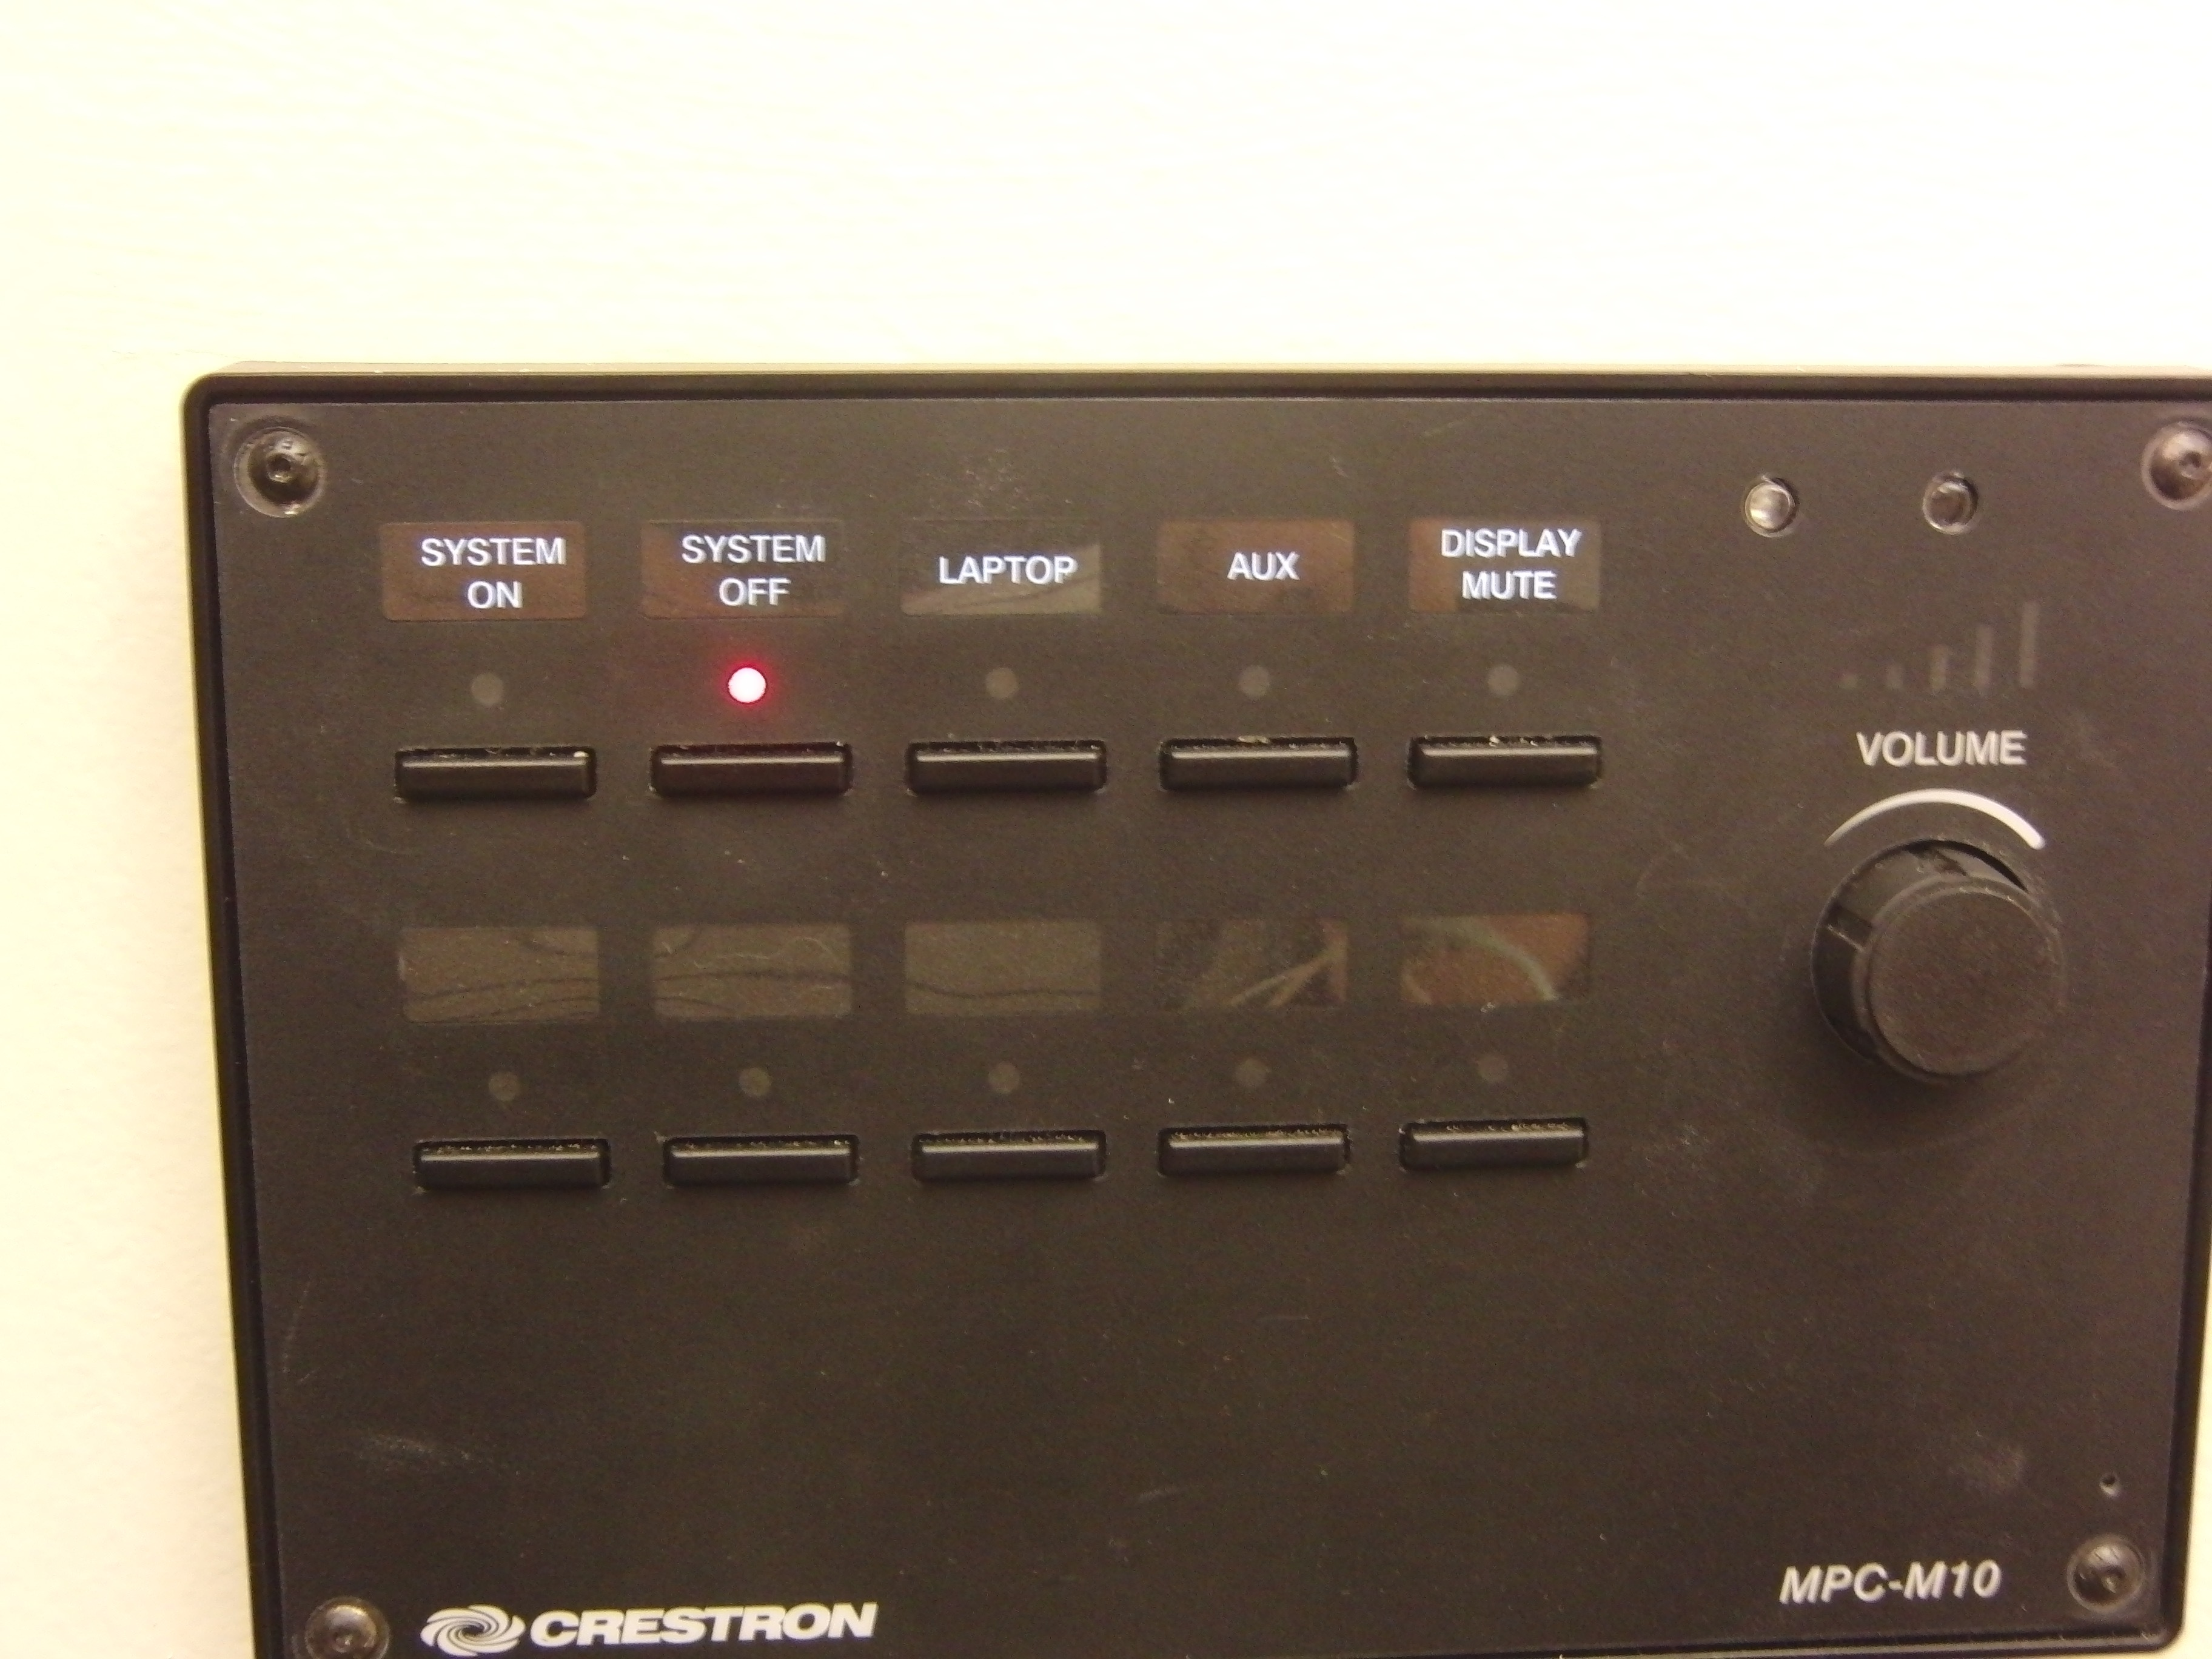 A photo of the control panel.